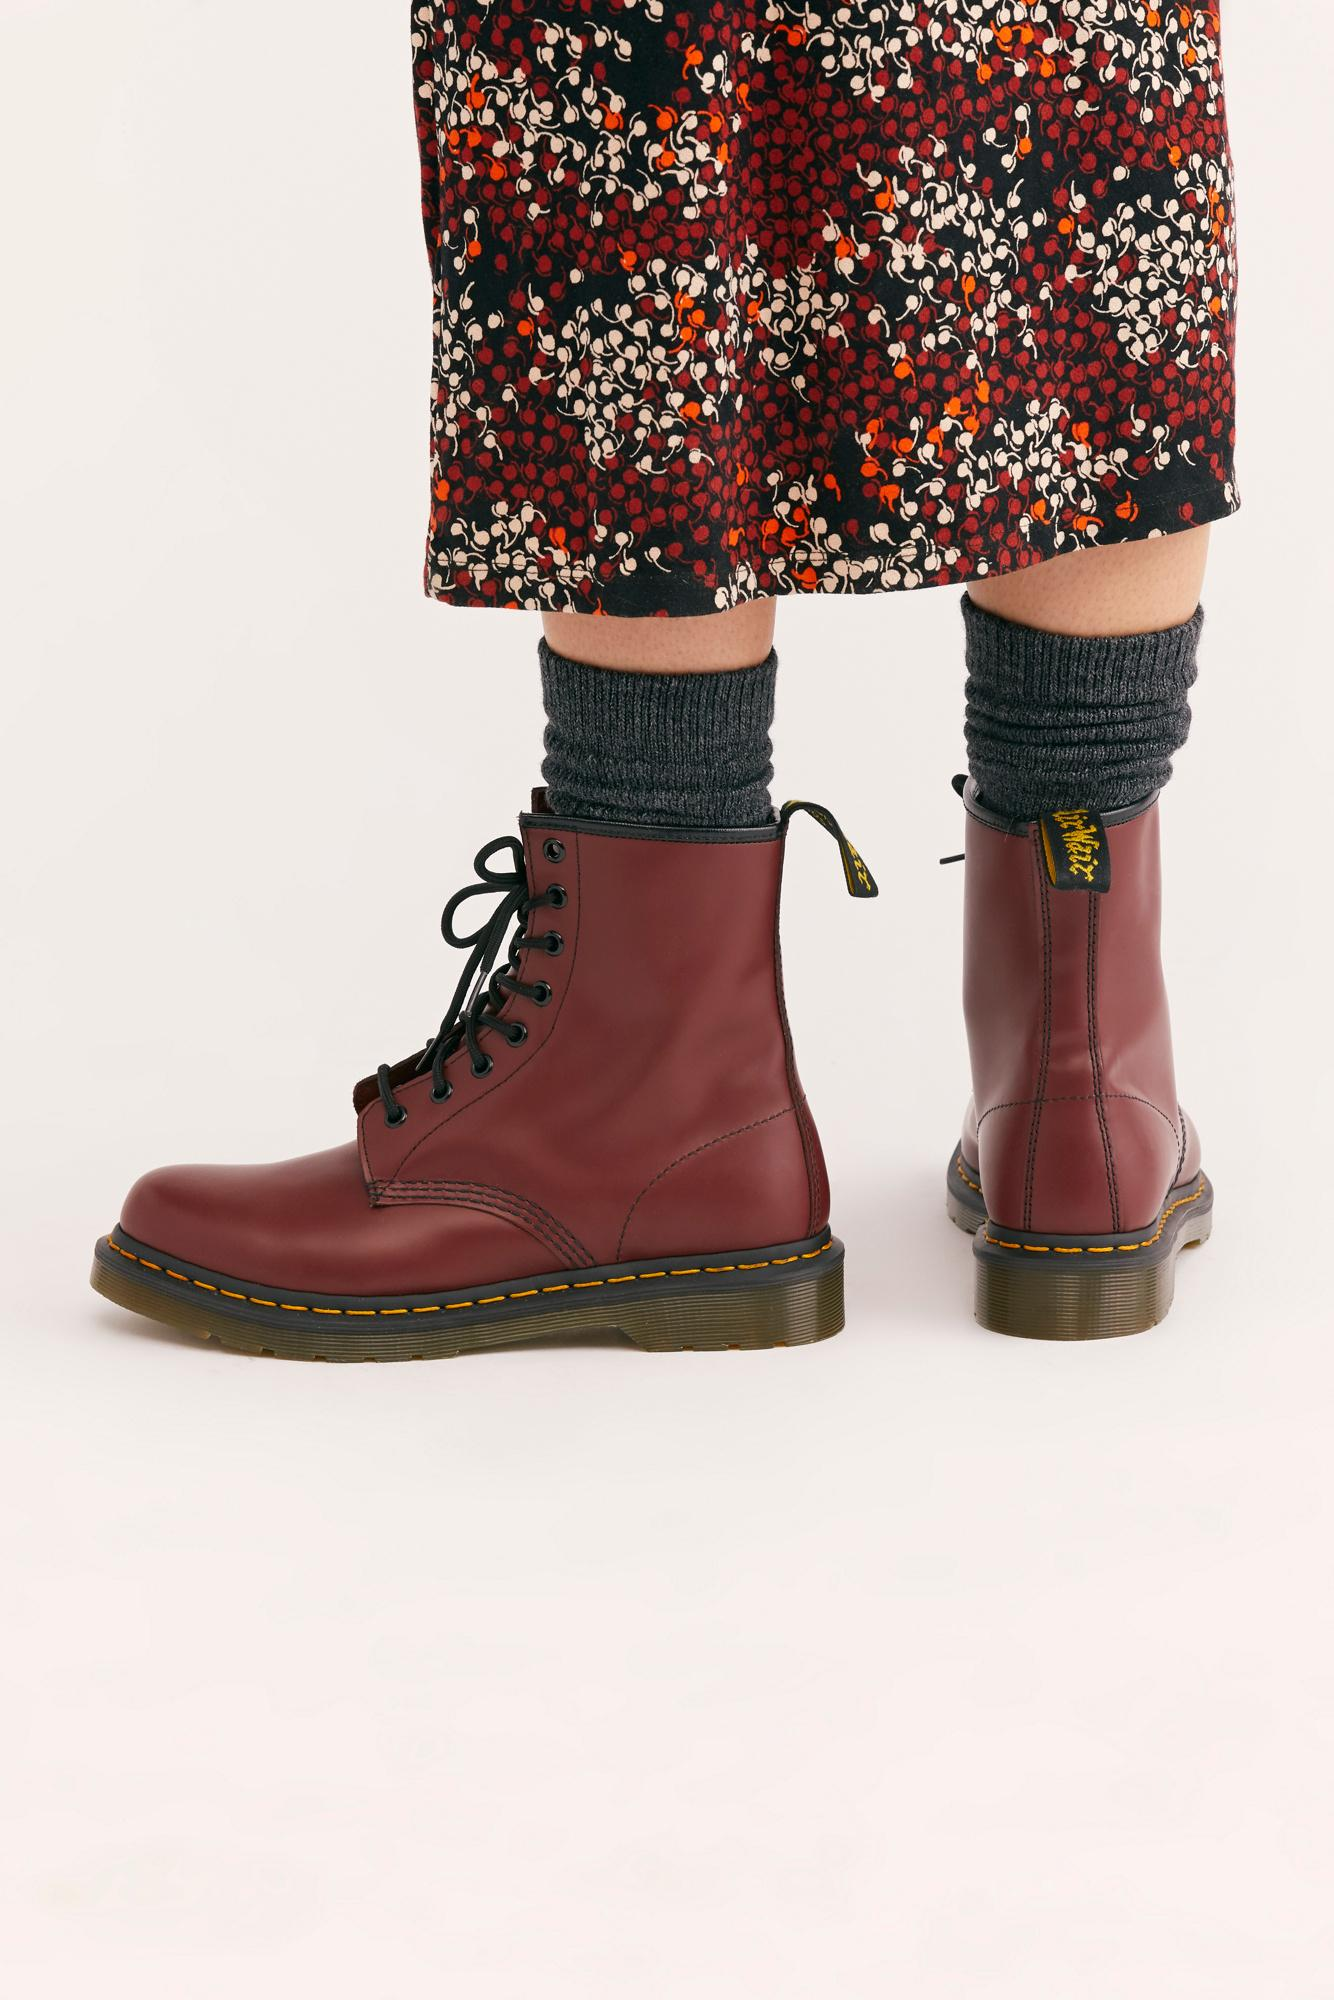 437f4419358 Women's Red Dr. Martens 1460 Smooth Lace-up Boot